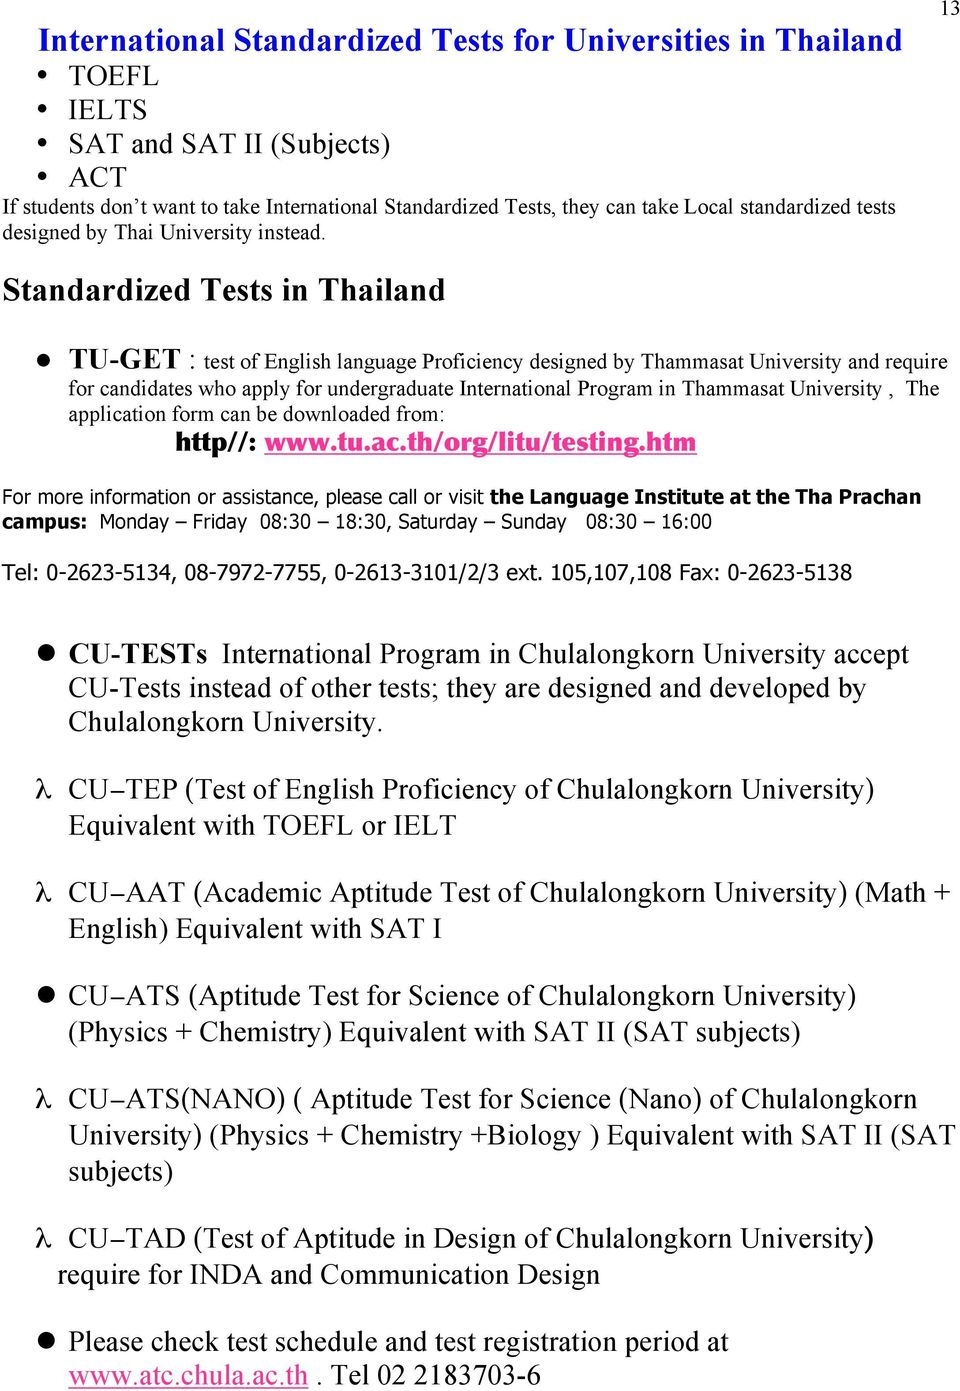 13 Standardized Tests in Thailand TU-GET : test of English language Proficiency designed by Thammasat University and require for candidates who apply for undergraduate International in Thammasat